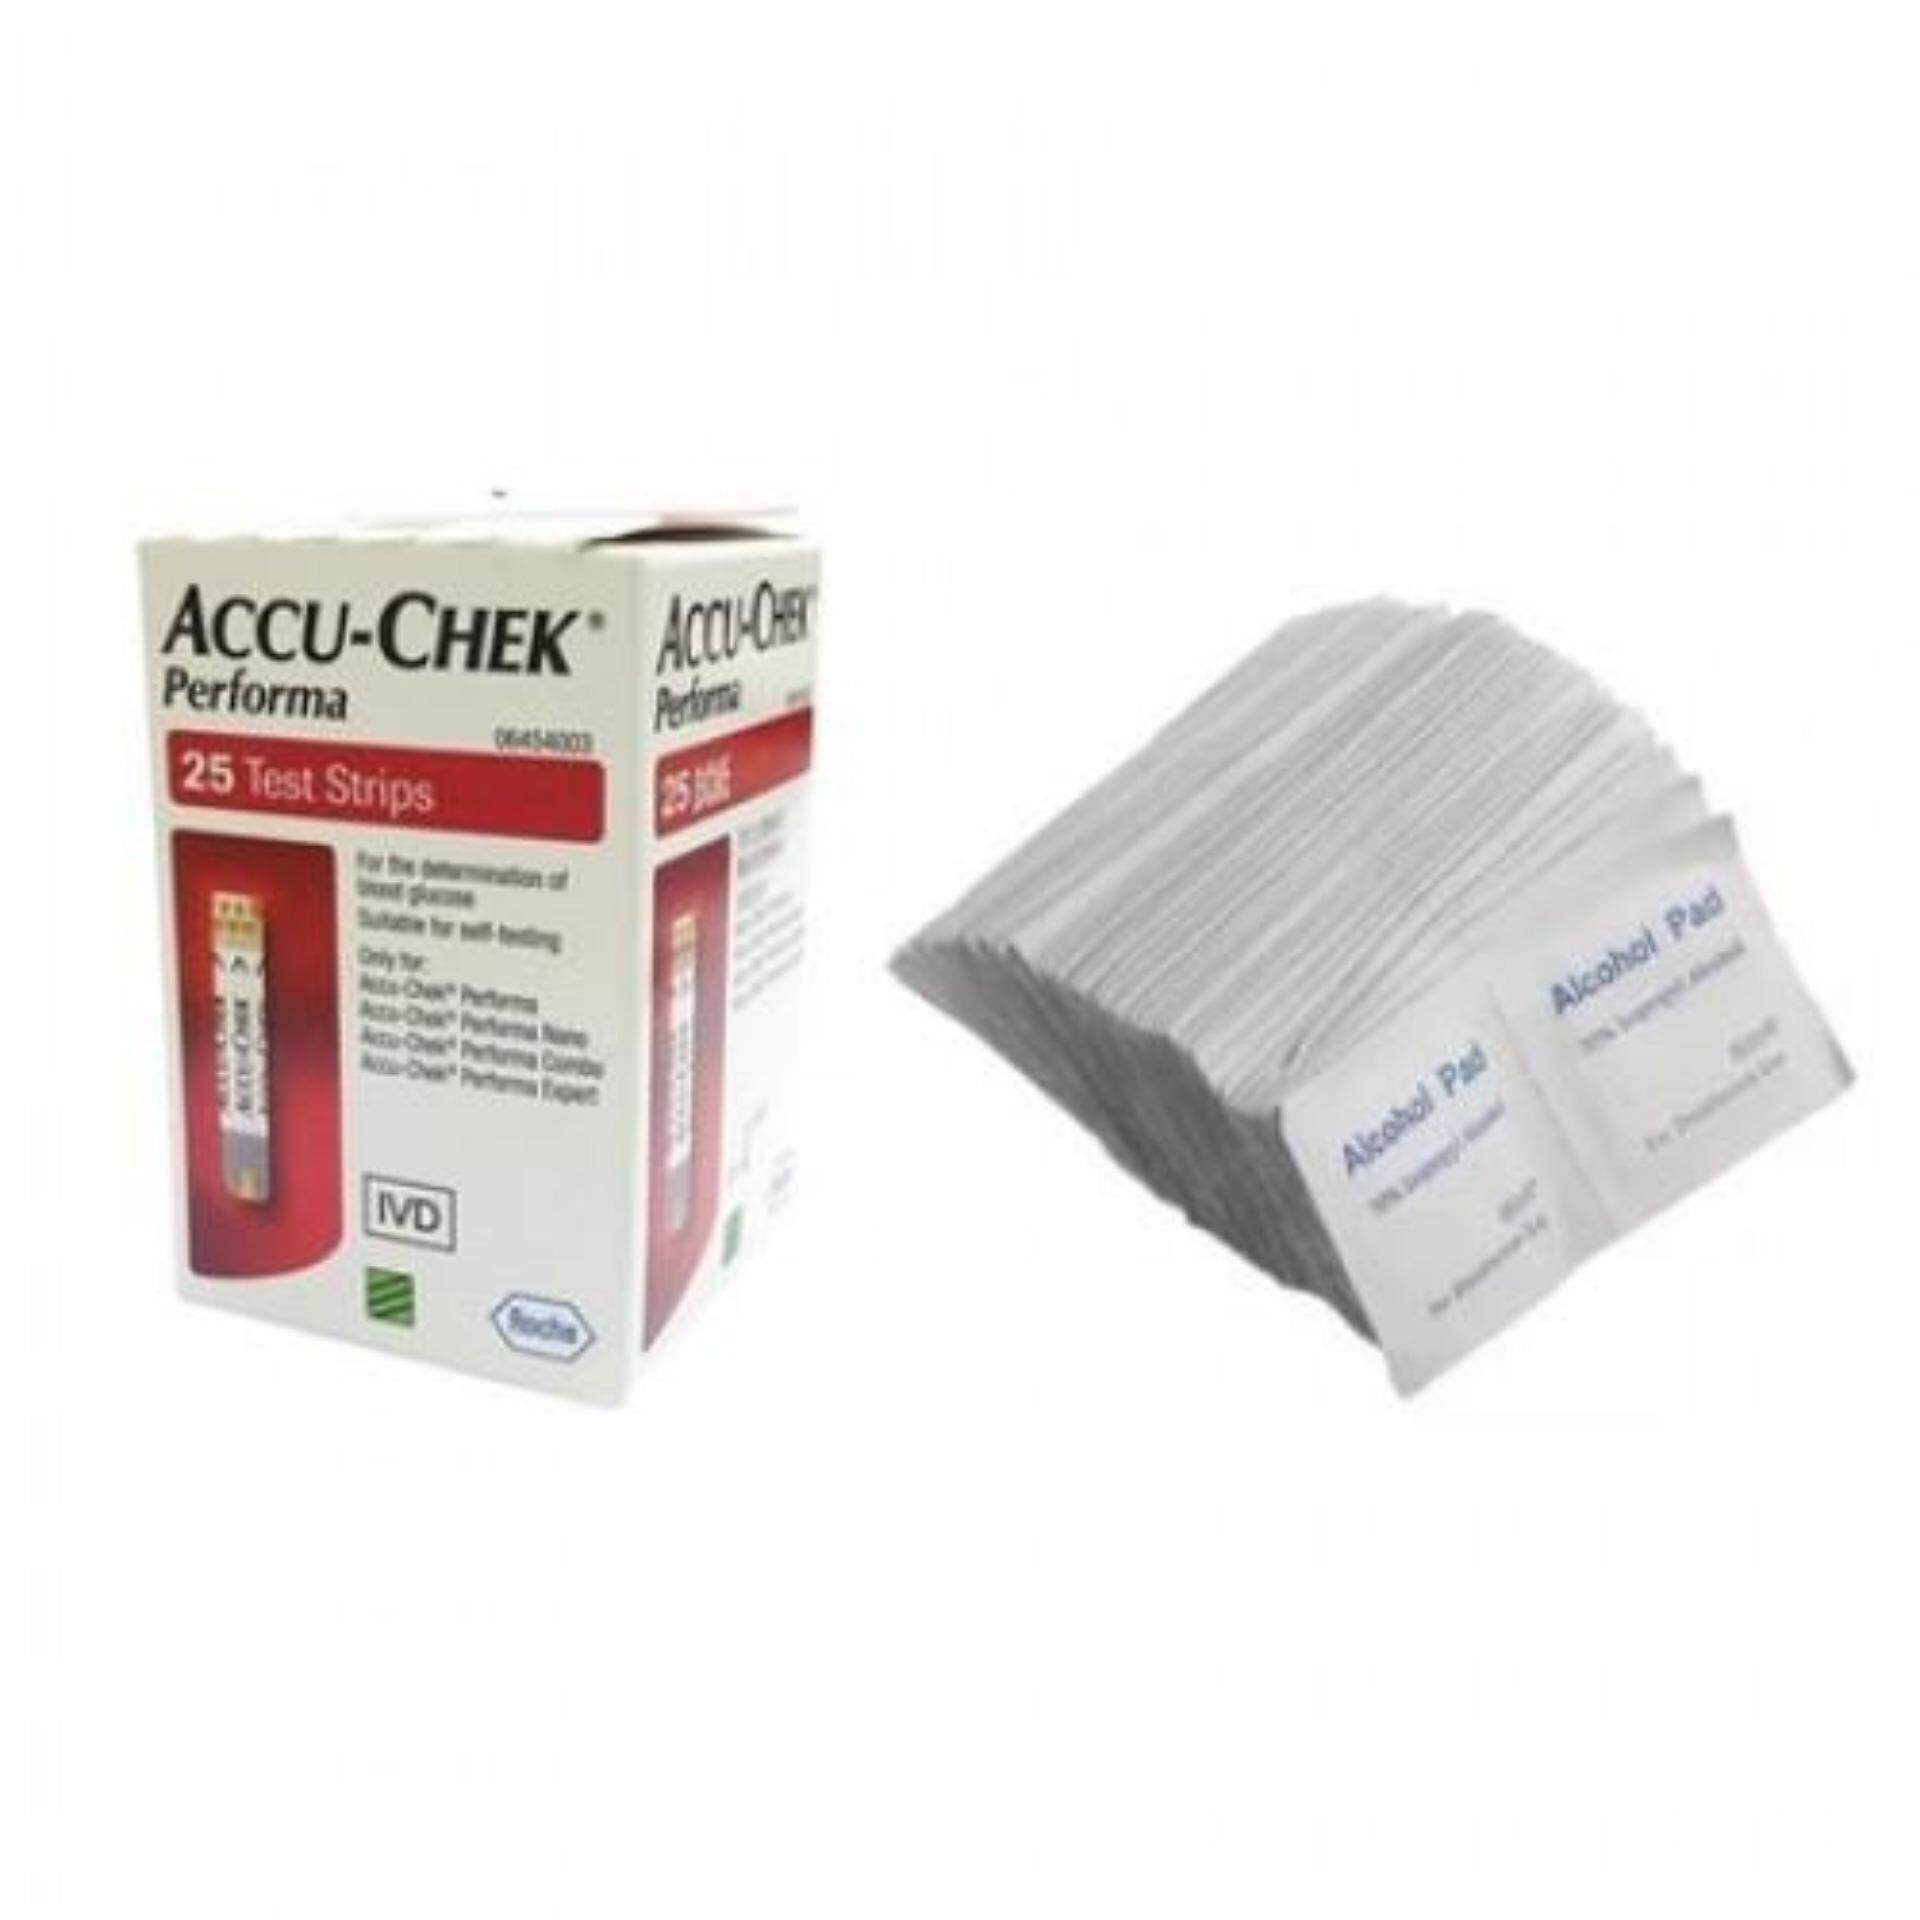 ACCU-CHEK PERFORMA BLOOD GLUCOSE STRIPS 25s X 2 + ALCOHOL SWABS_x000D_ 200s